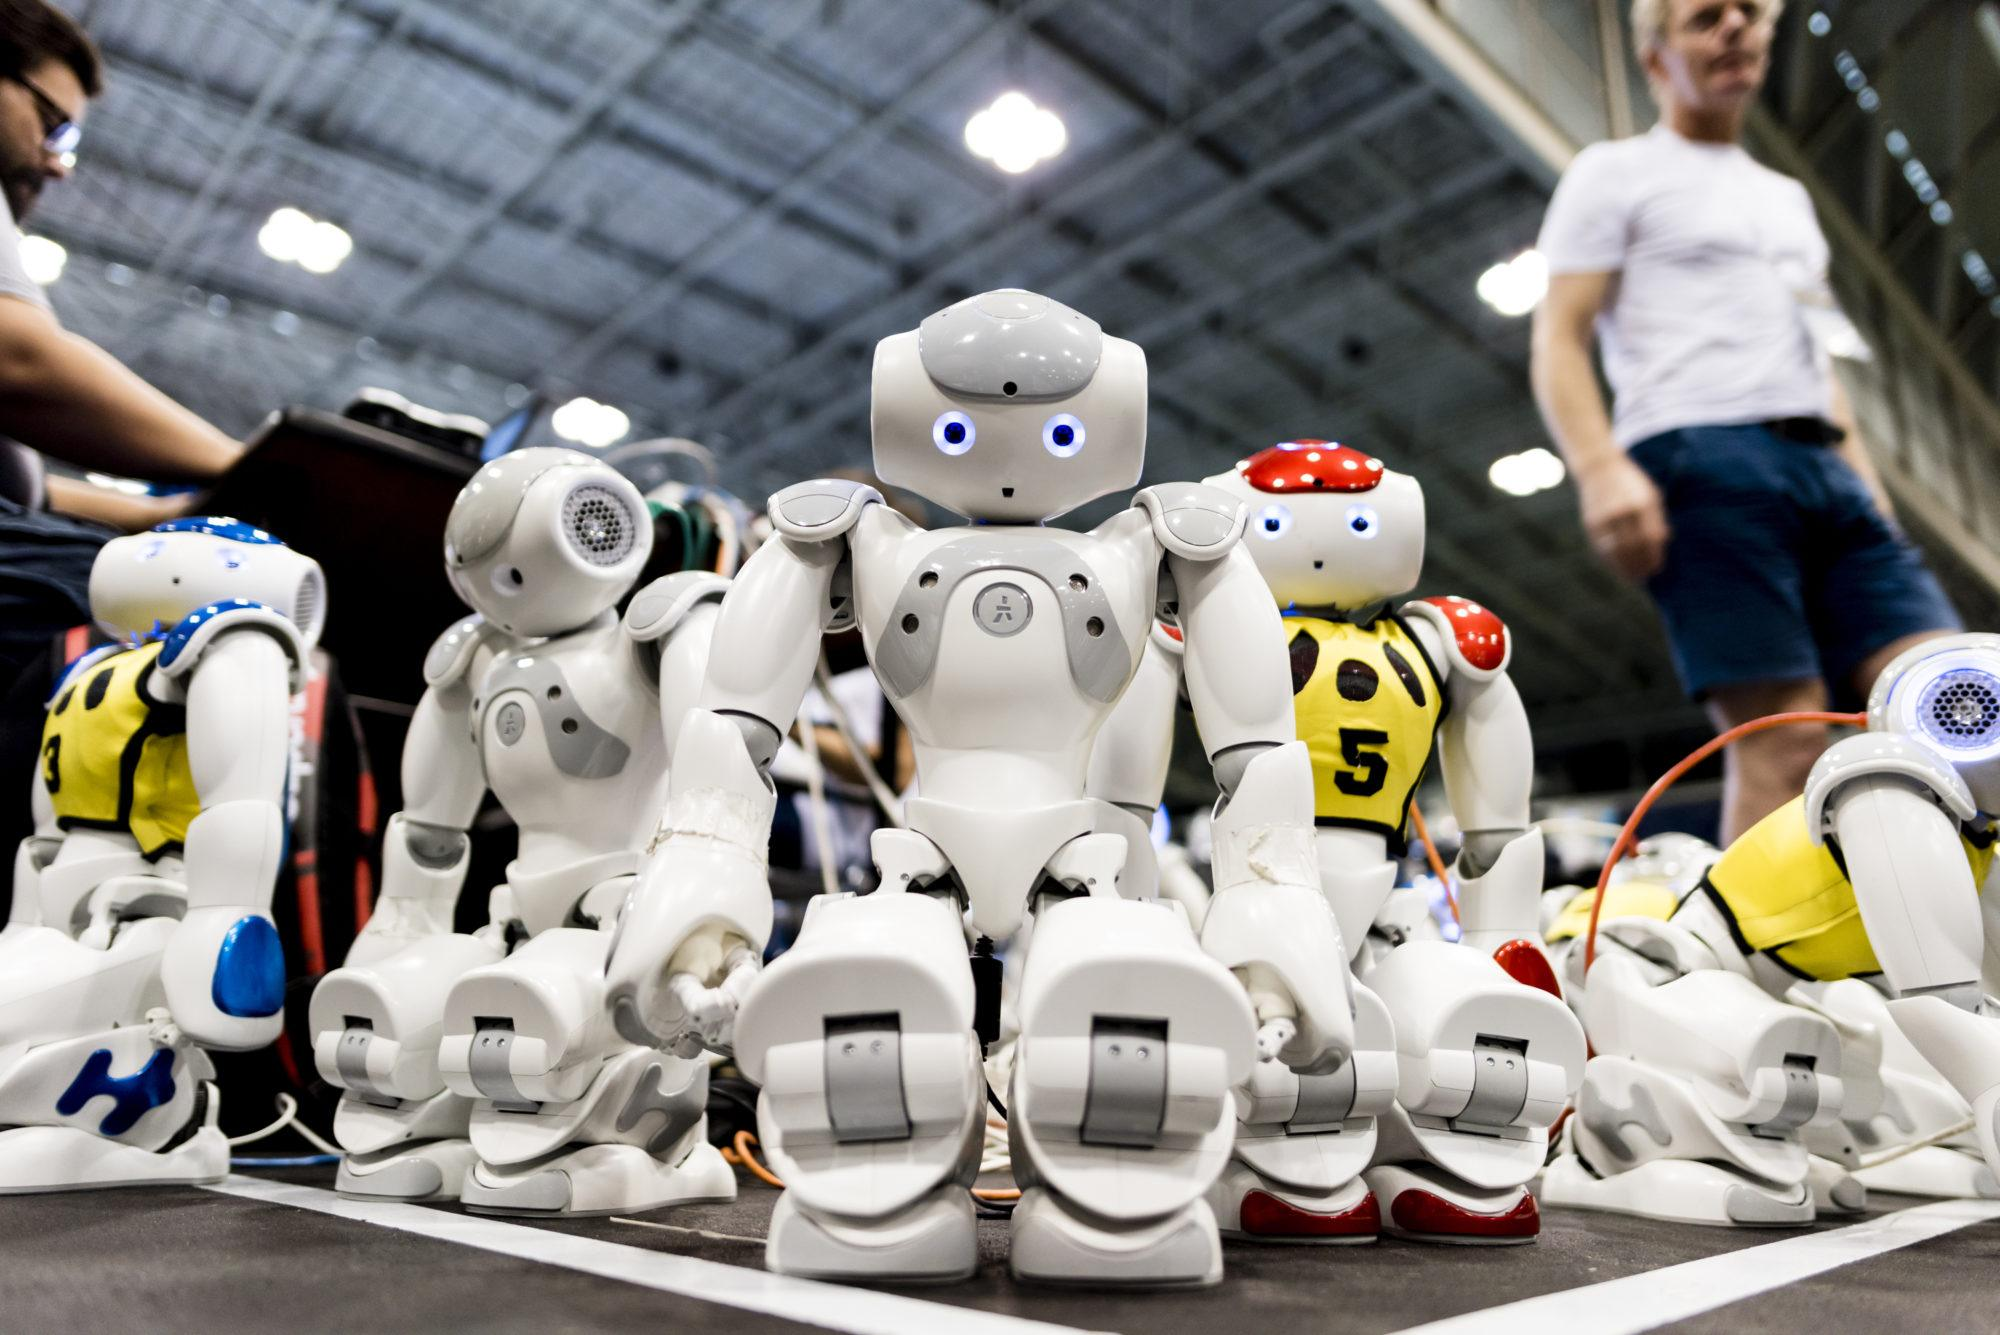 Artificial intelligence without the hype